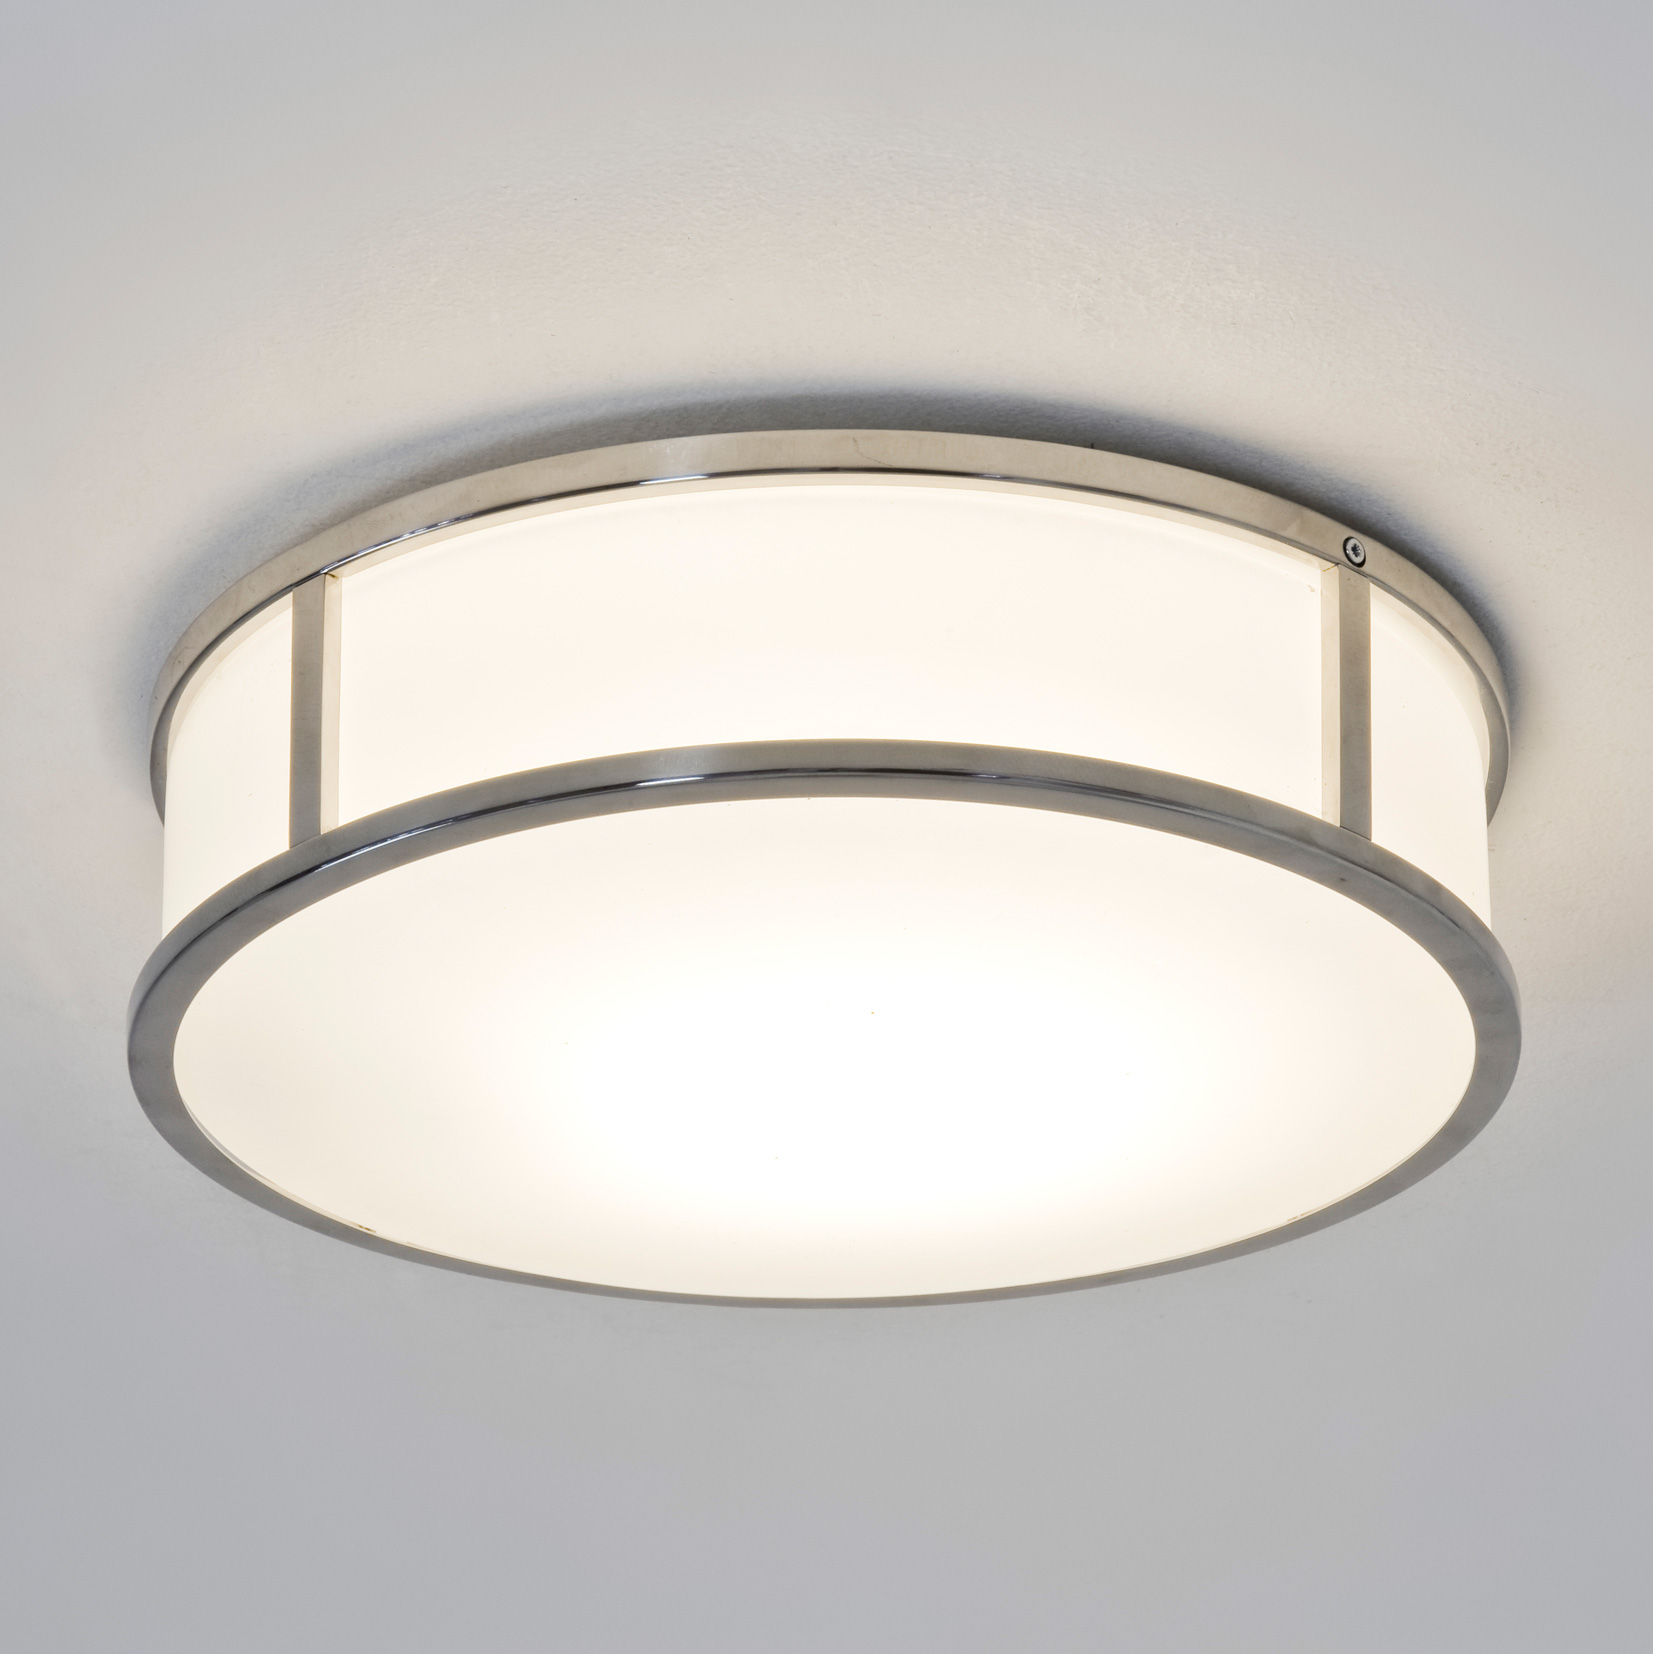 Bathroom Lighting | Product Categories | Light Innovation